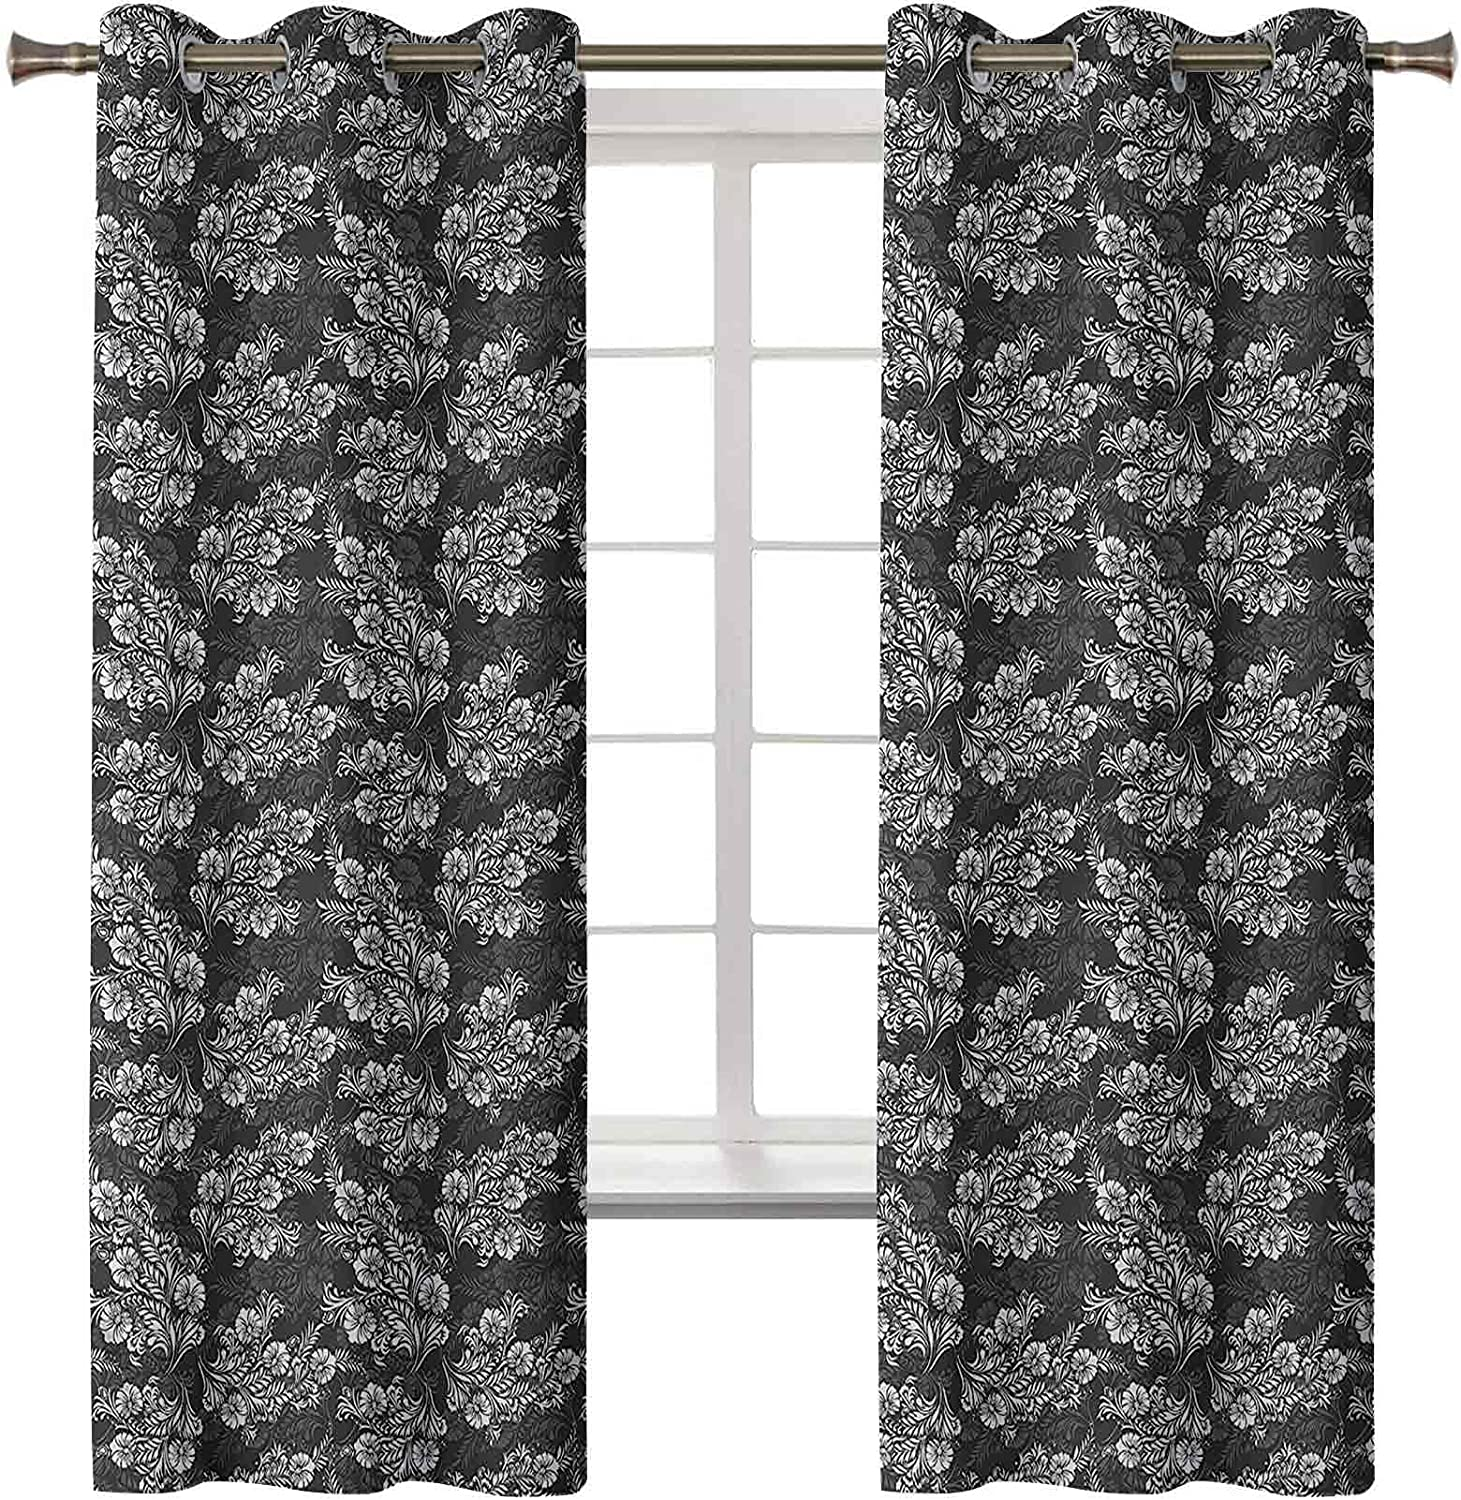 Blackout Curtains Grommet Thermal Bouqu Insulated Damask Flower 67% OFF of fixed Same day shipping price